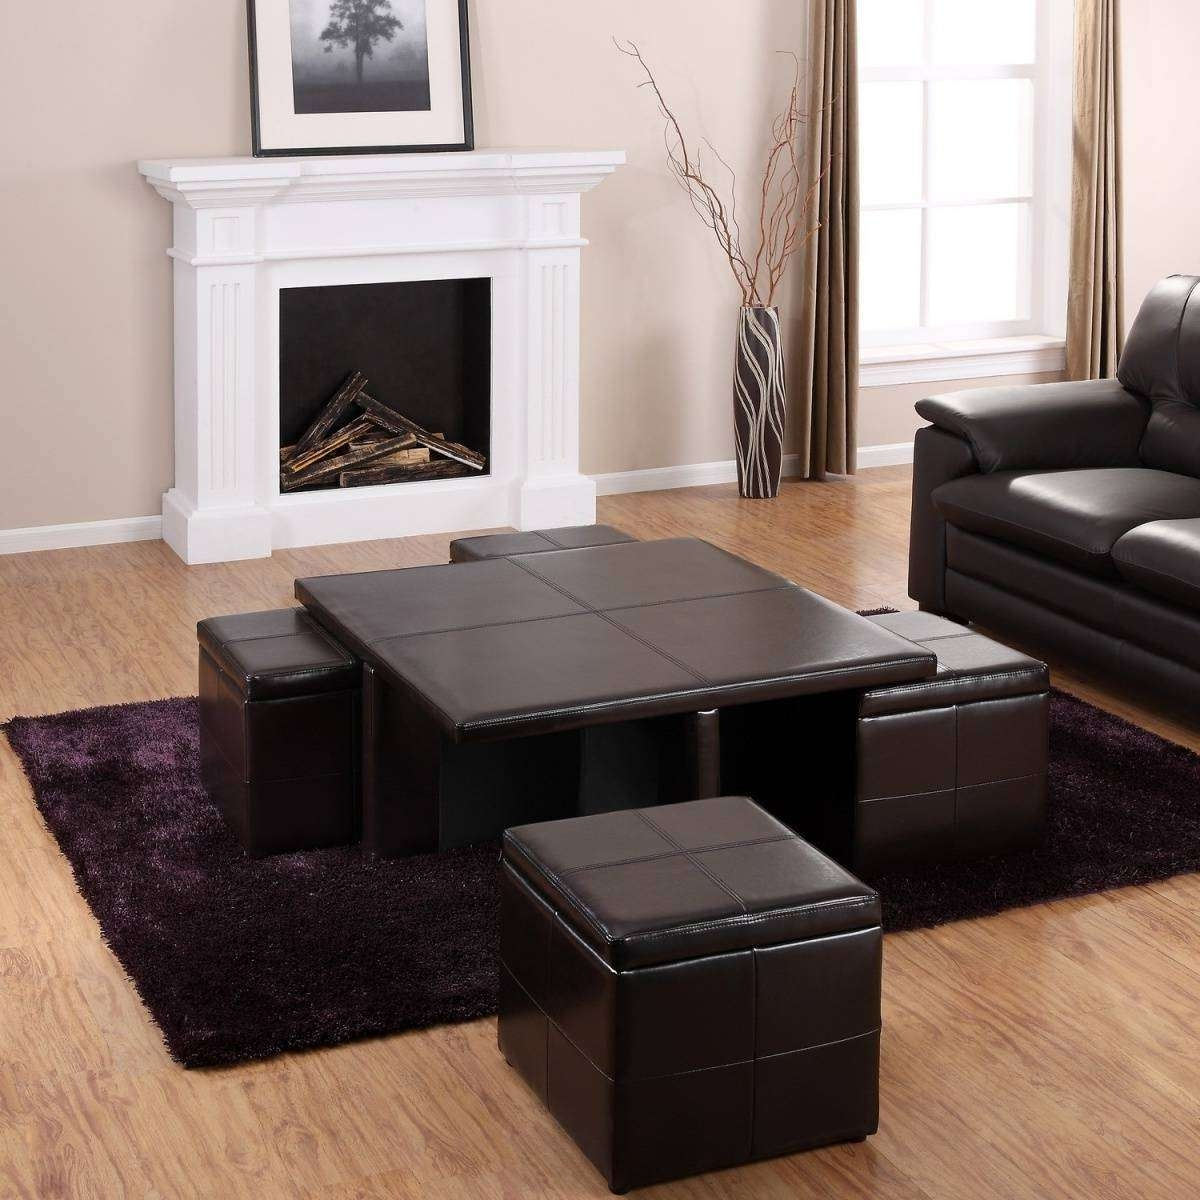 Coffee Table Displaying Gallery Of Purple Ottoman Coffee Tables With Well Known Purple Ottoman Coffee Tables (View 15 of 20)